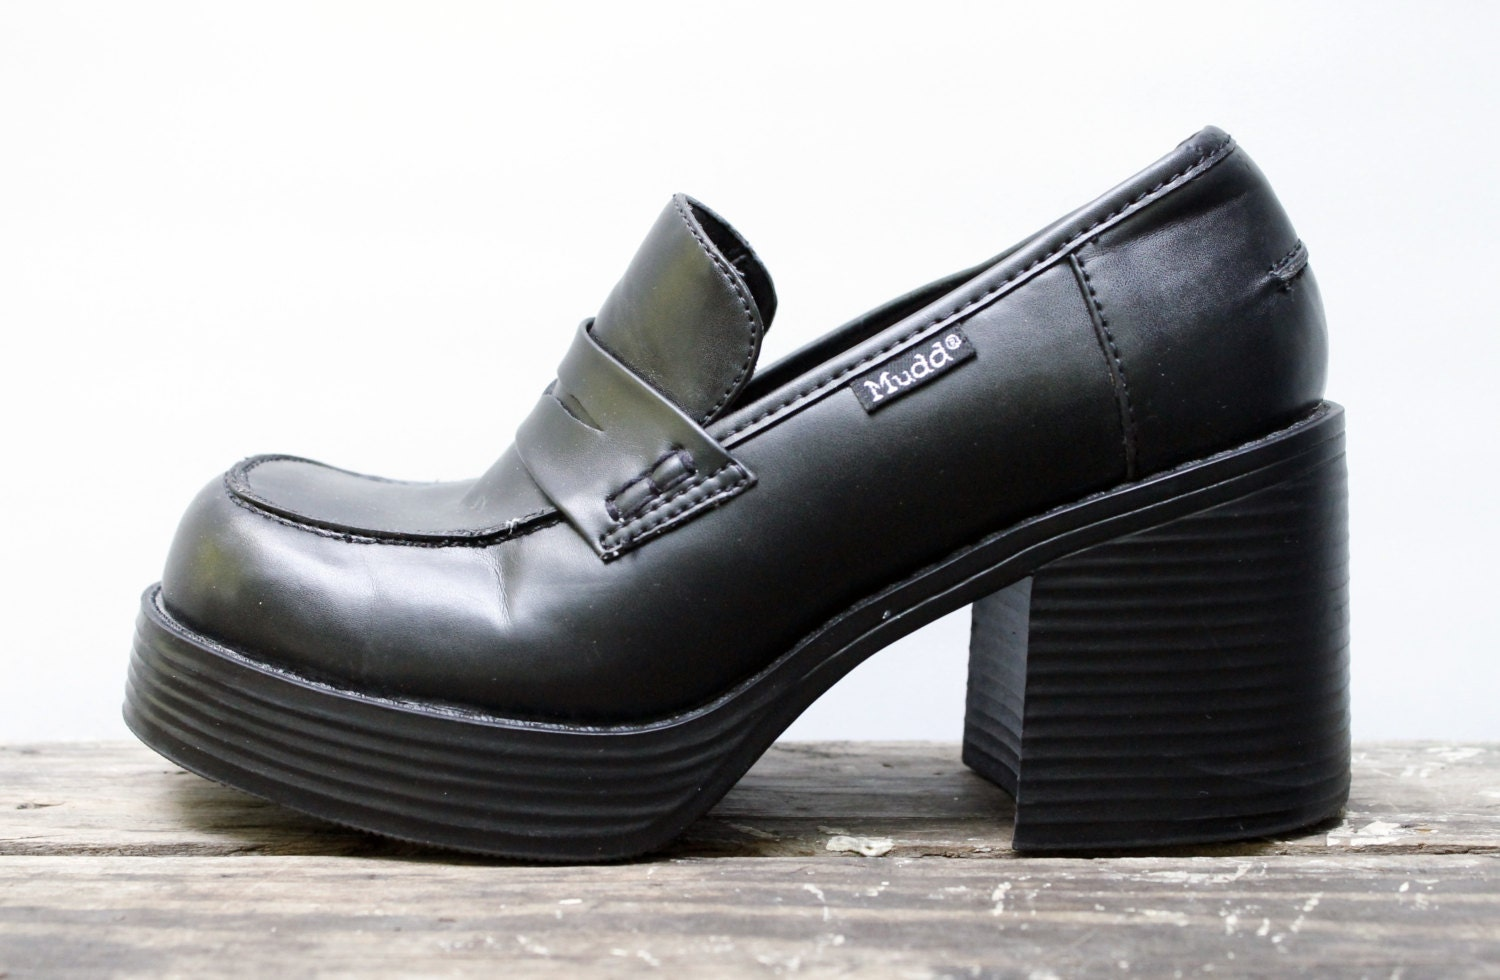 Mudd Chunky Heel Shoes - Is Heel